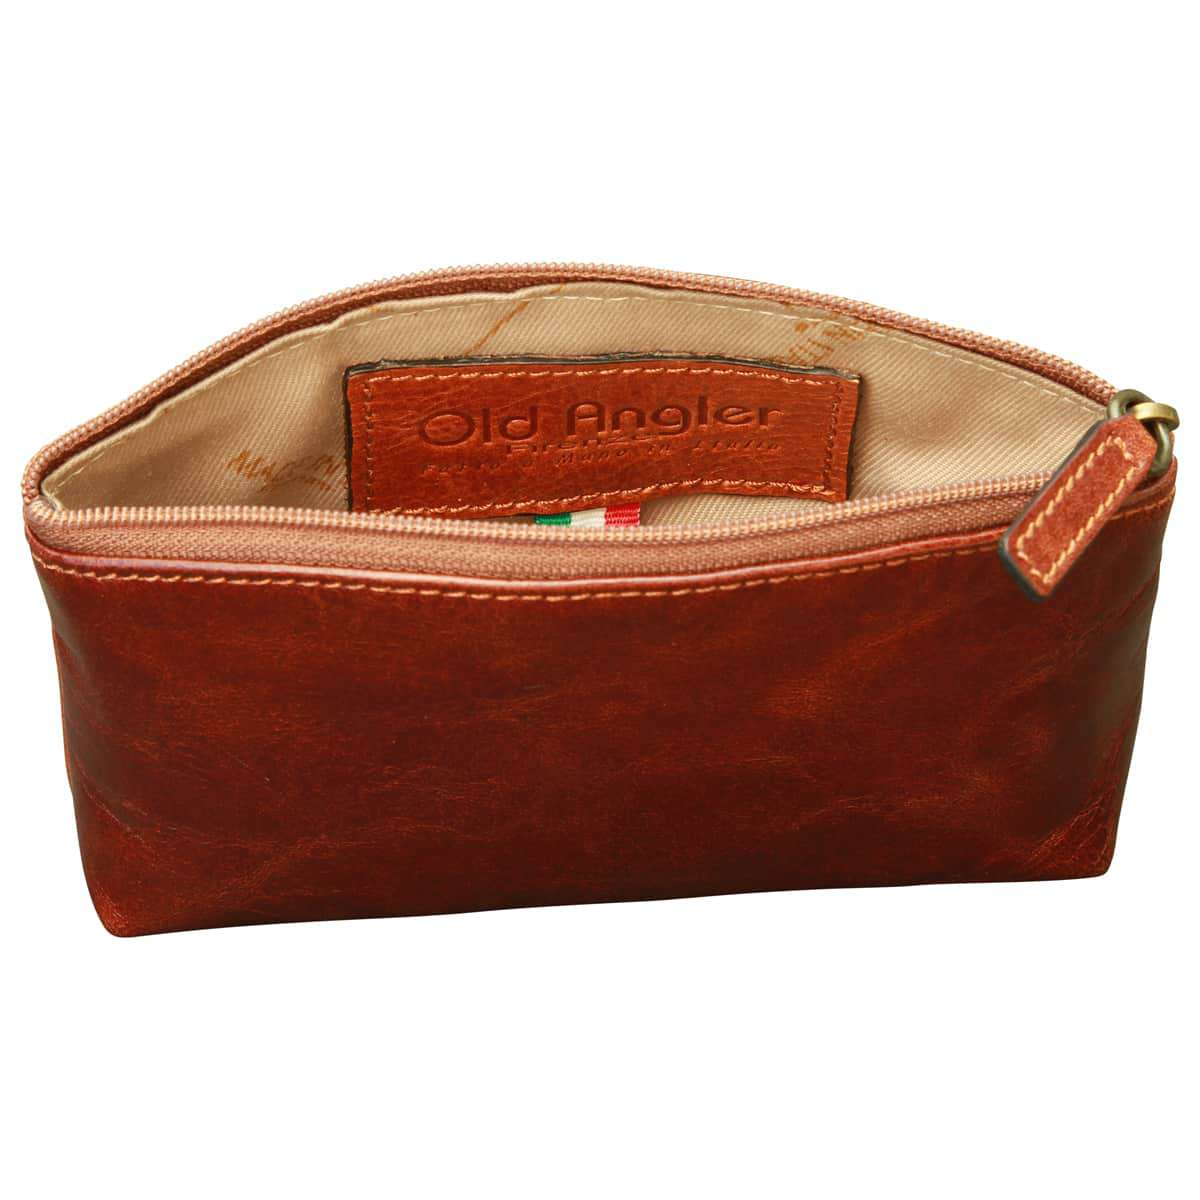 Italian leather beauty case - Brown | 407705MA | EURO | Old Angler Firenze